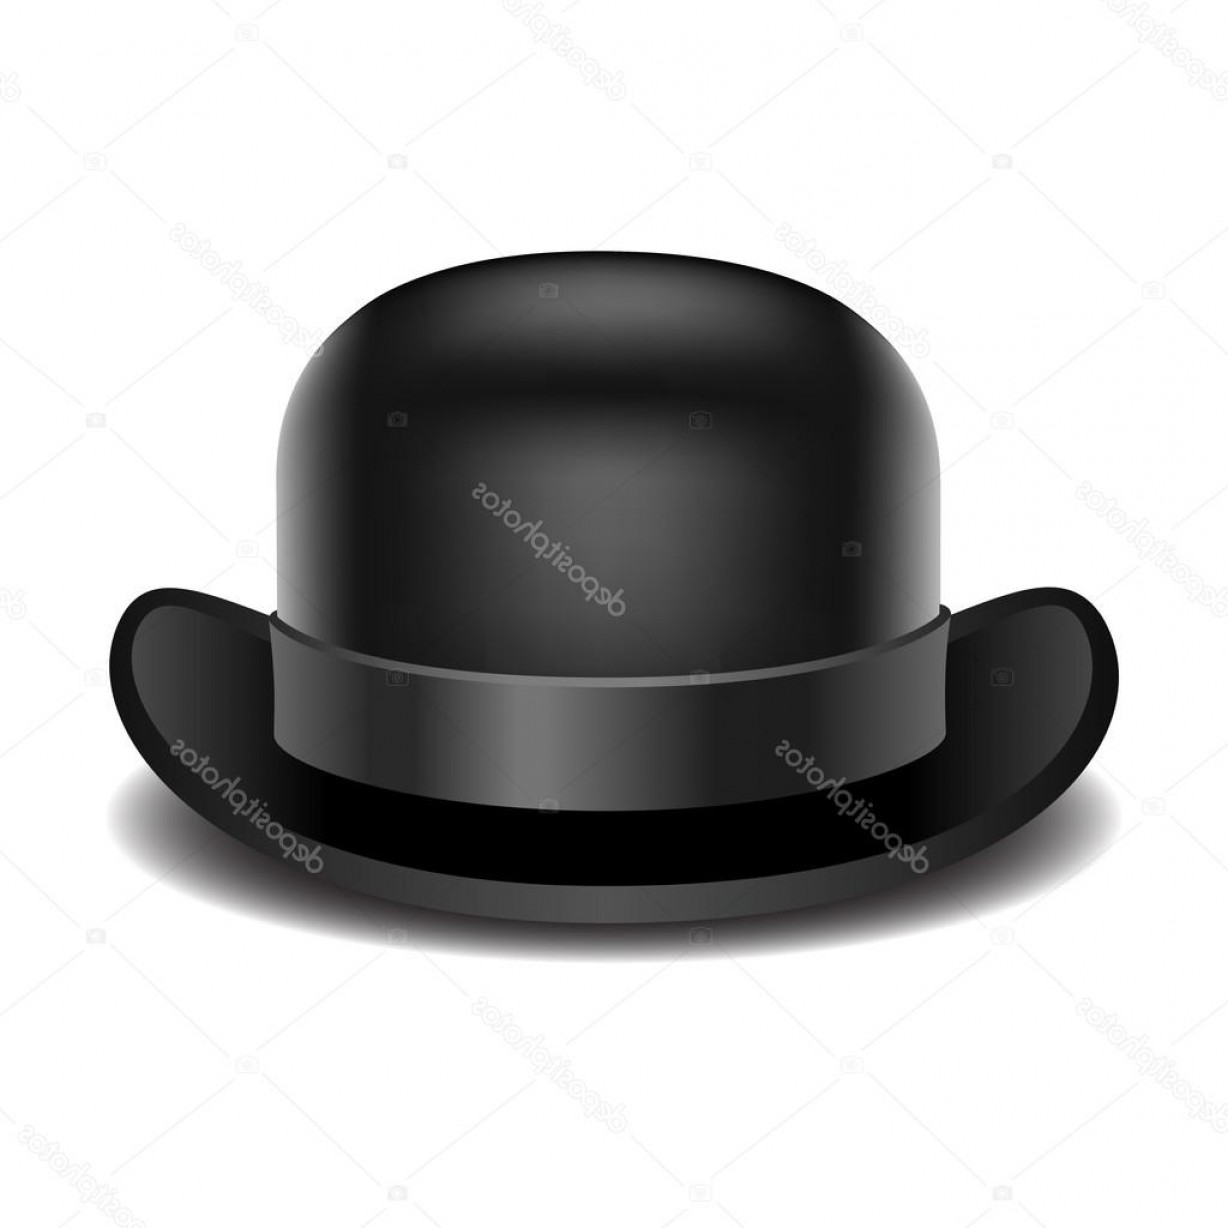 Bowler Hat Vector: Stock Illustration Bowler Hat On A White